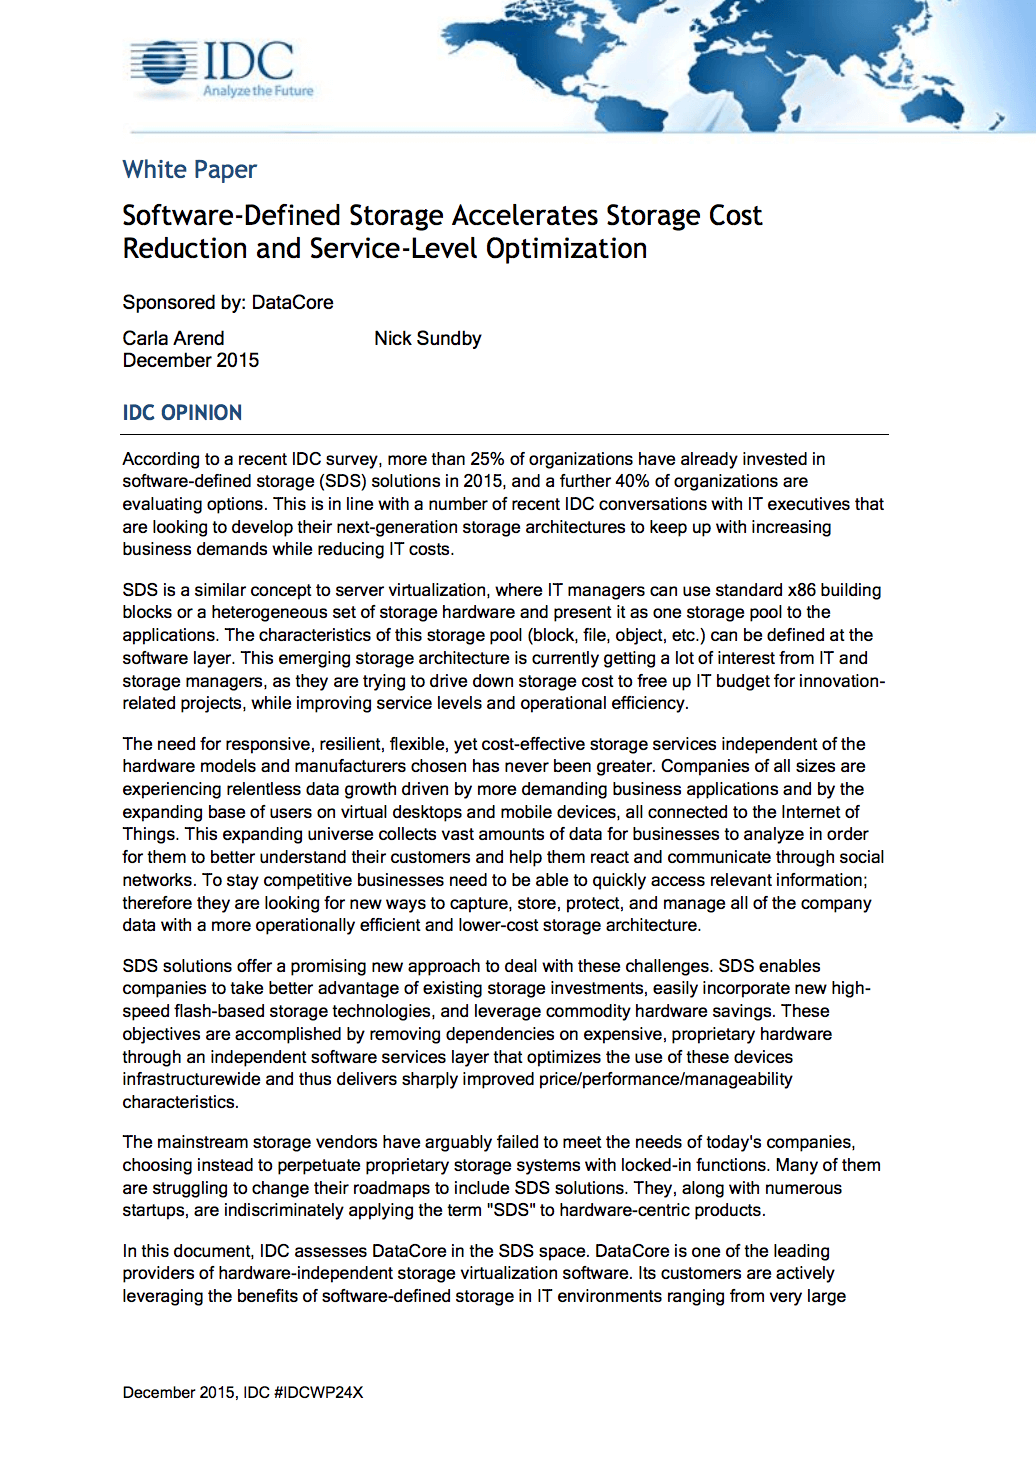 SDS Accelerates Storage Cost Reduction and Service-level Optimization